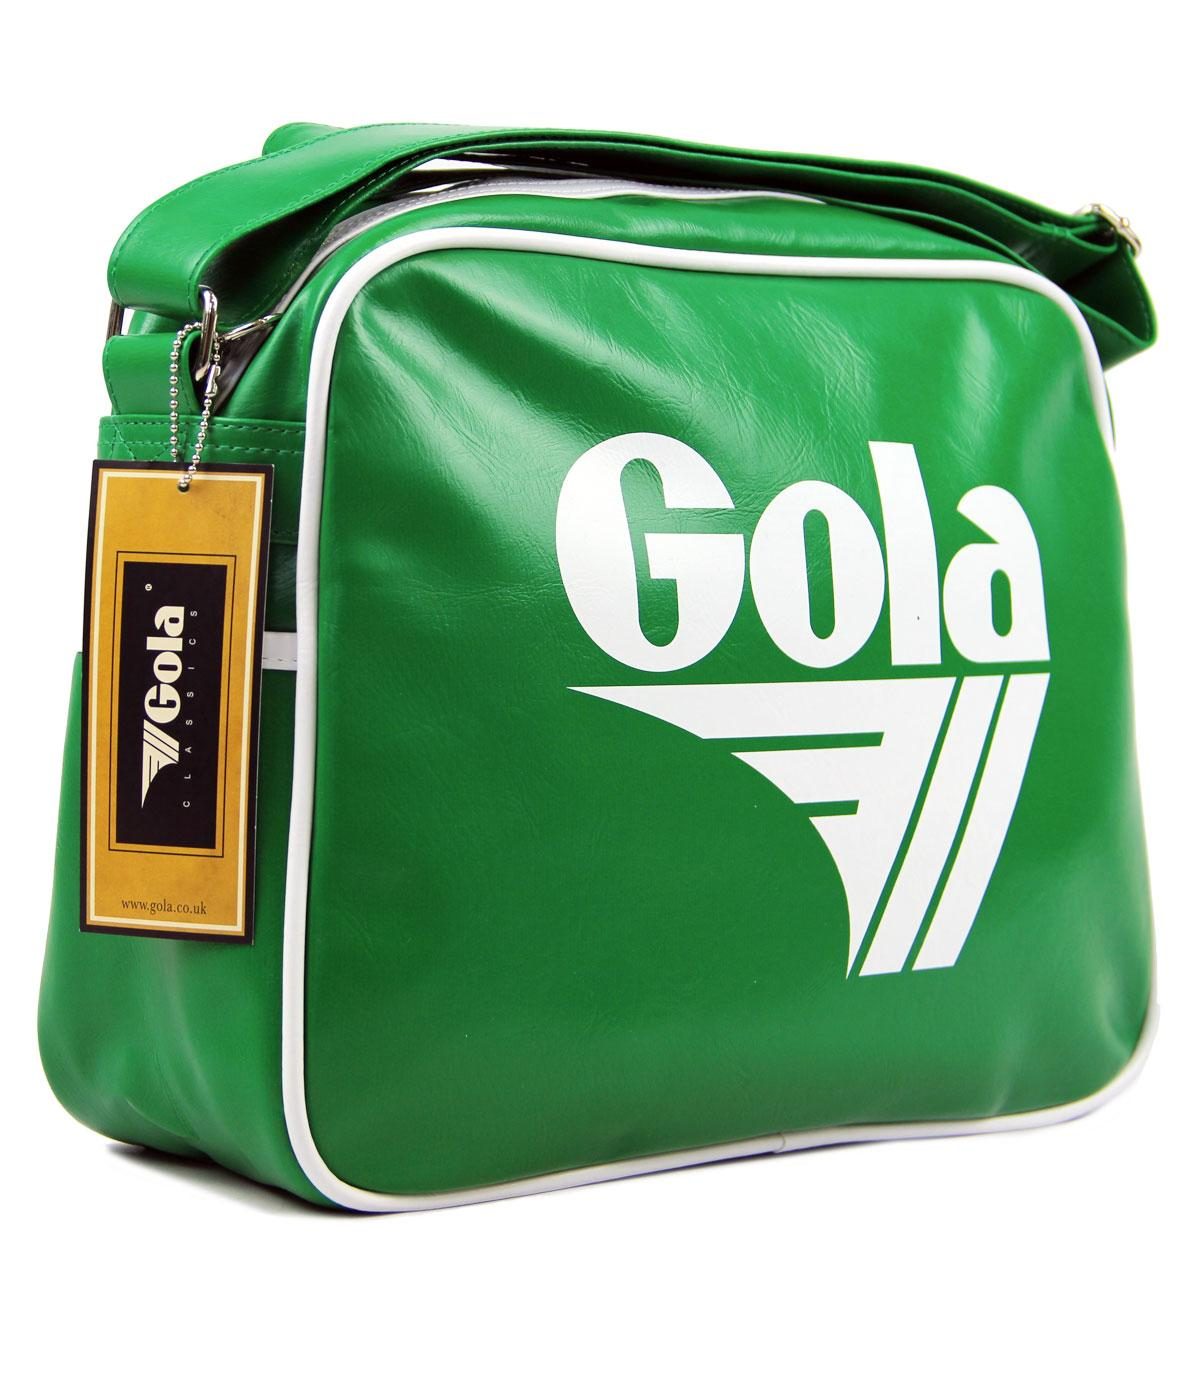 GOLA Redford Retro 70s Sports Shoulder Bag GRN/WHT